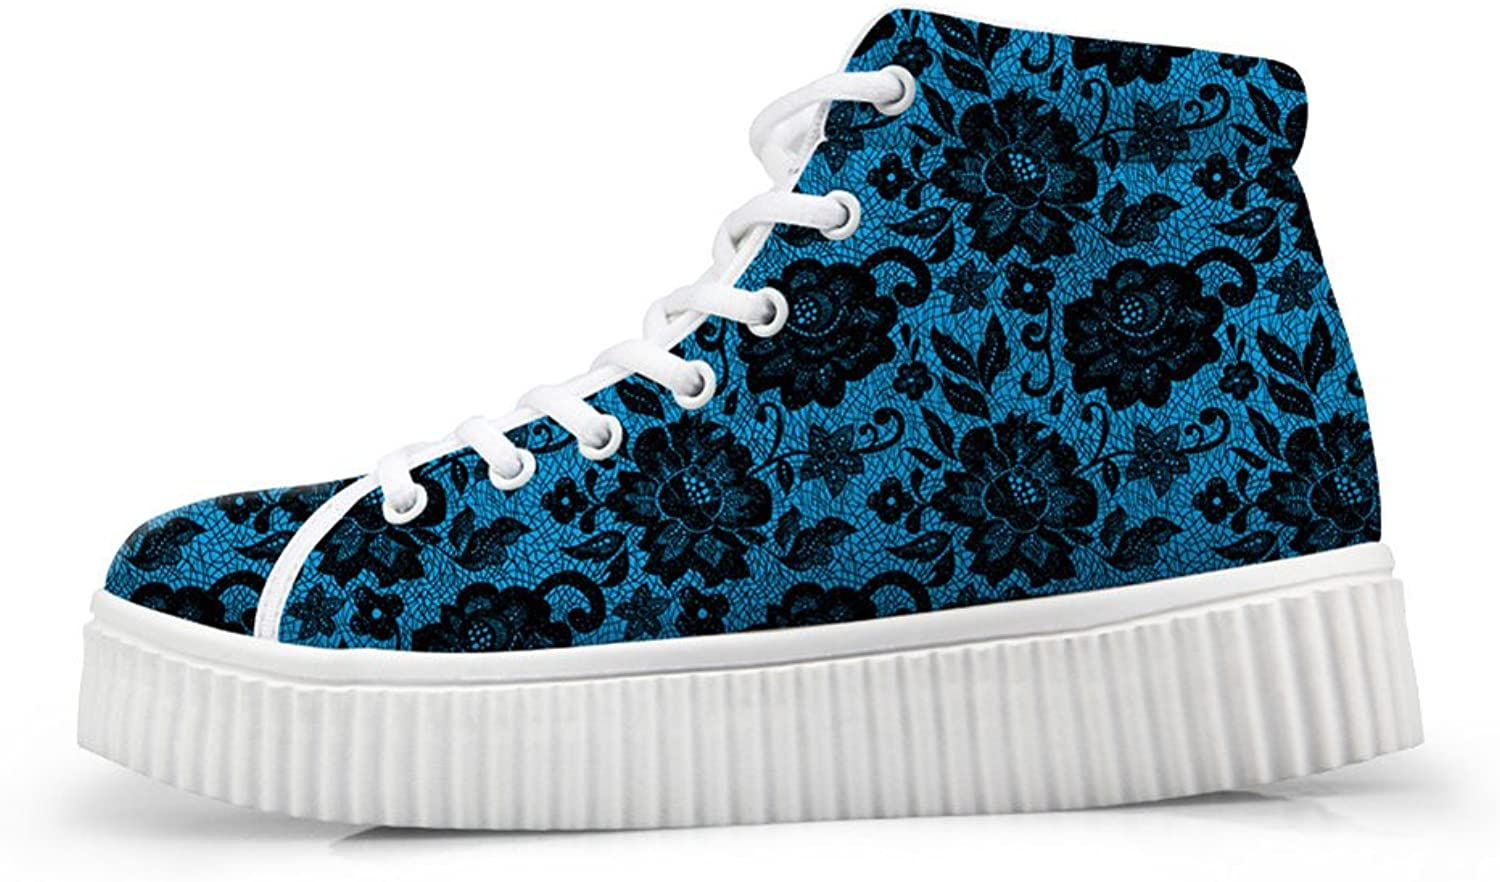 Classic Floral Print Hi Top Women Sneaker Lace Up Platform shoes US 9